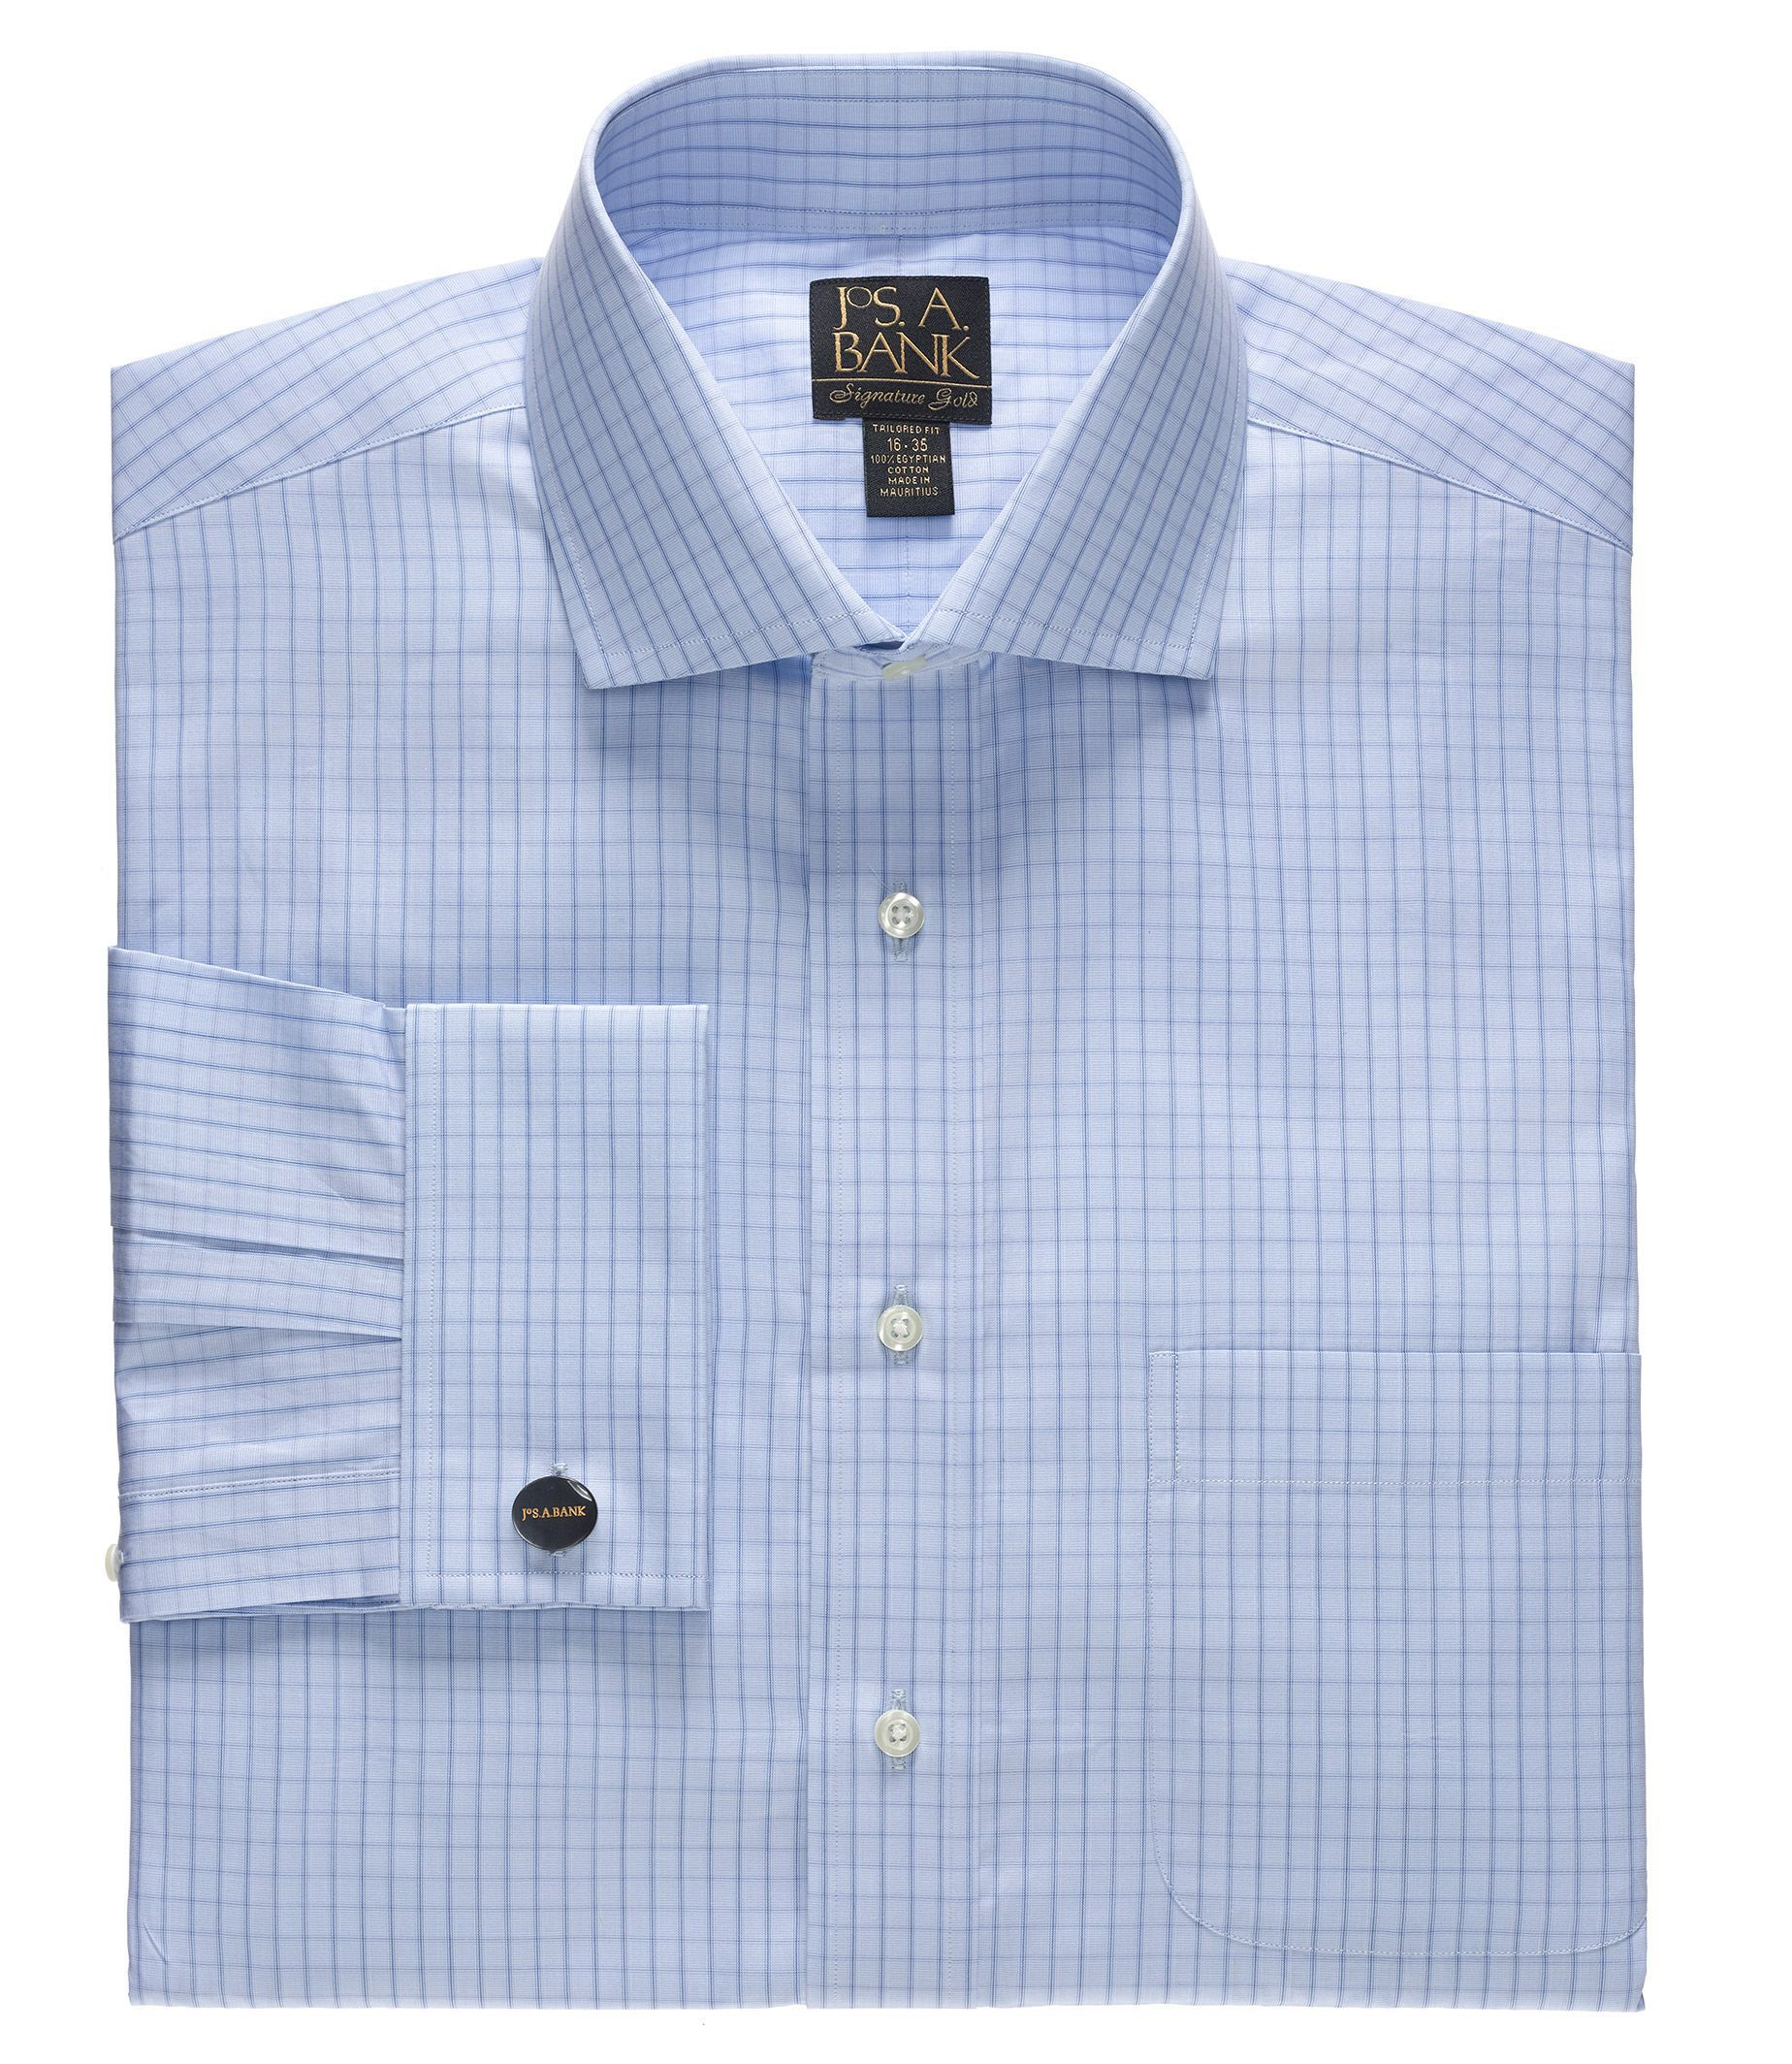 Signature Gold Tailored Fit Cutaway Collar/French Cuff Dress Shirt